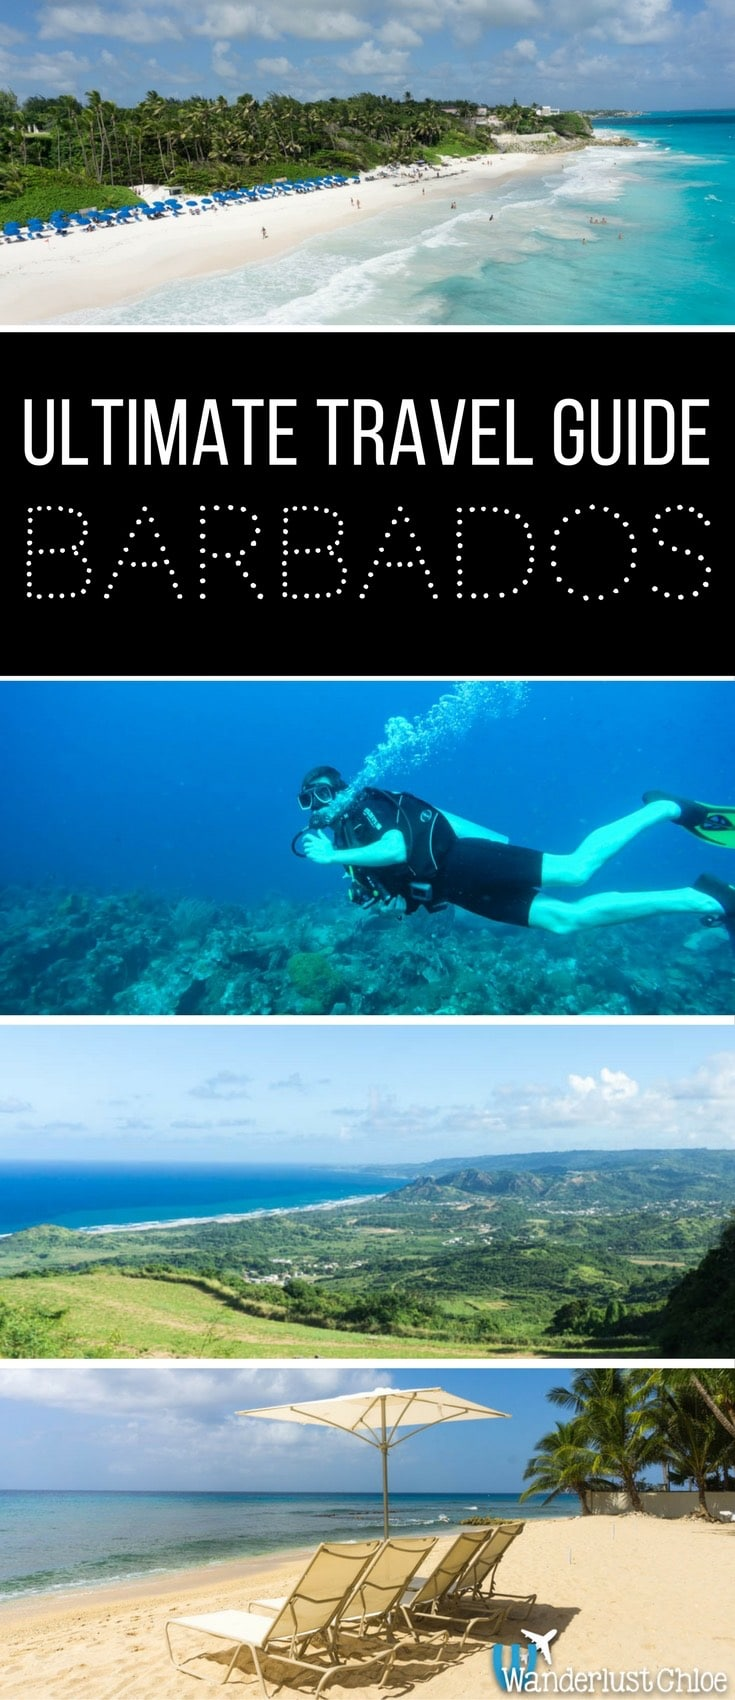 Barbados: The Ultimate Travel Guide